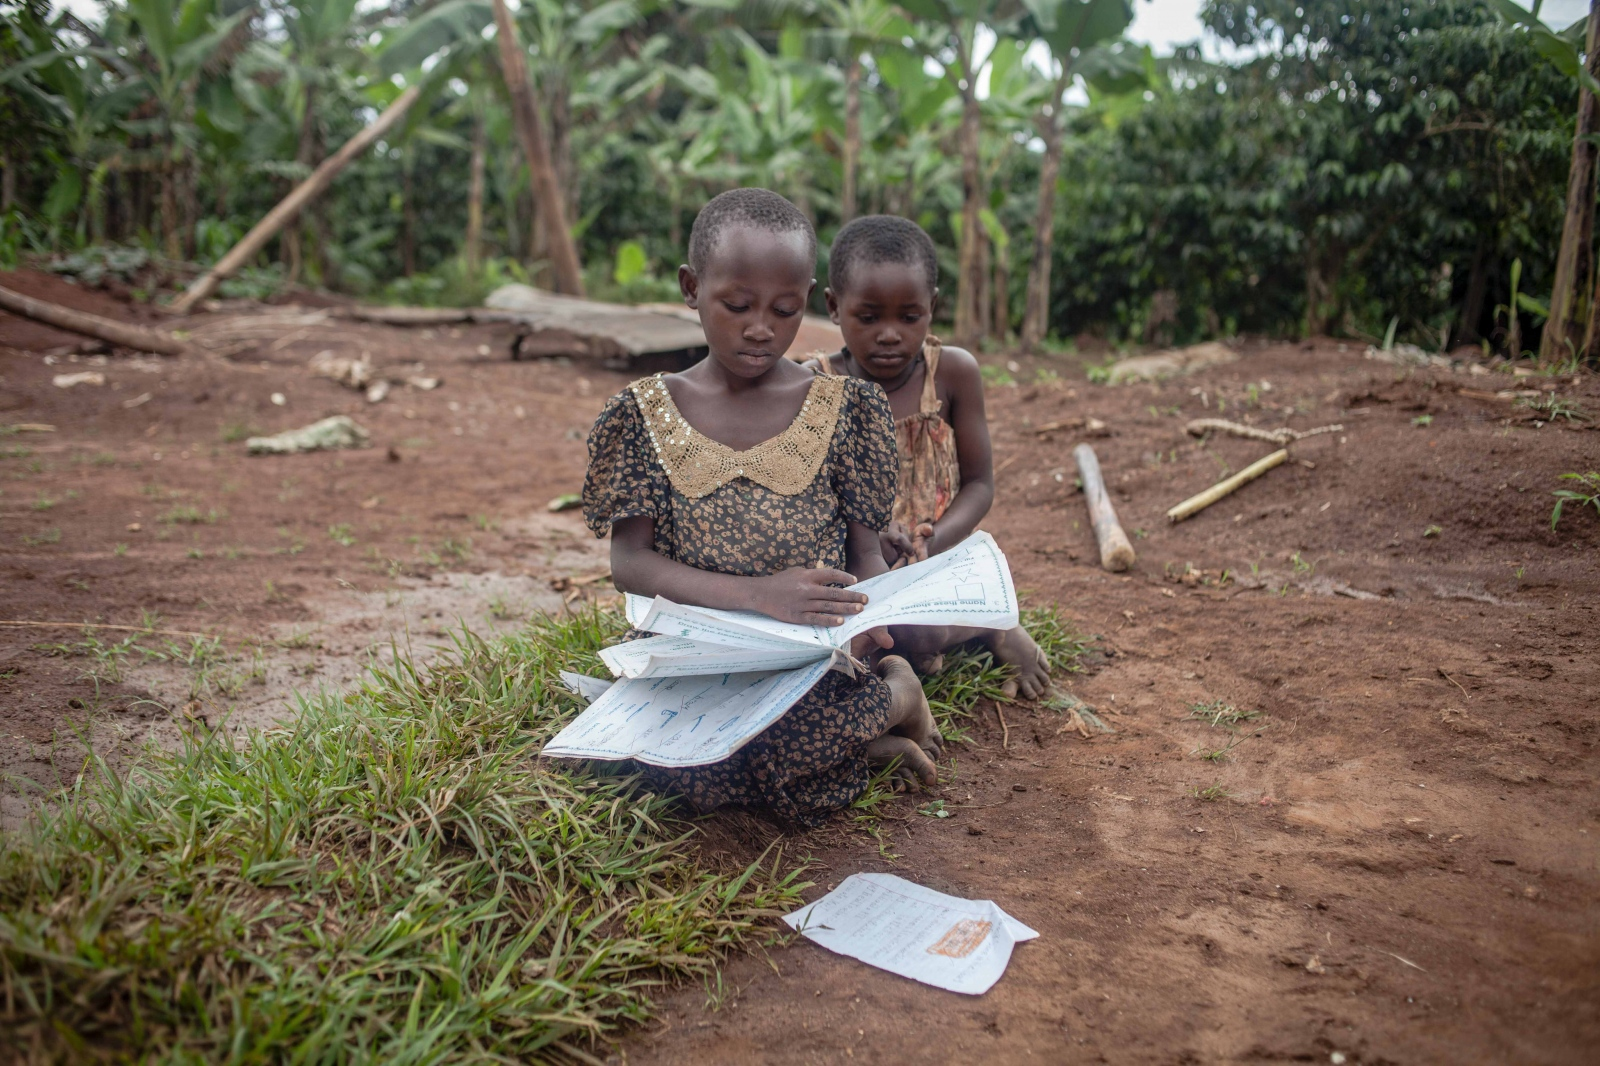 Many children in rural areas miss out on finishing their homework because of an absence of a safe light source in the house. Access to clean energy is very much needed in many areas of rural Uganda. For Let There Be Light International